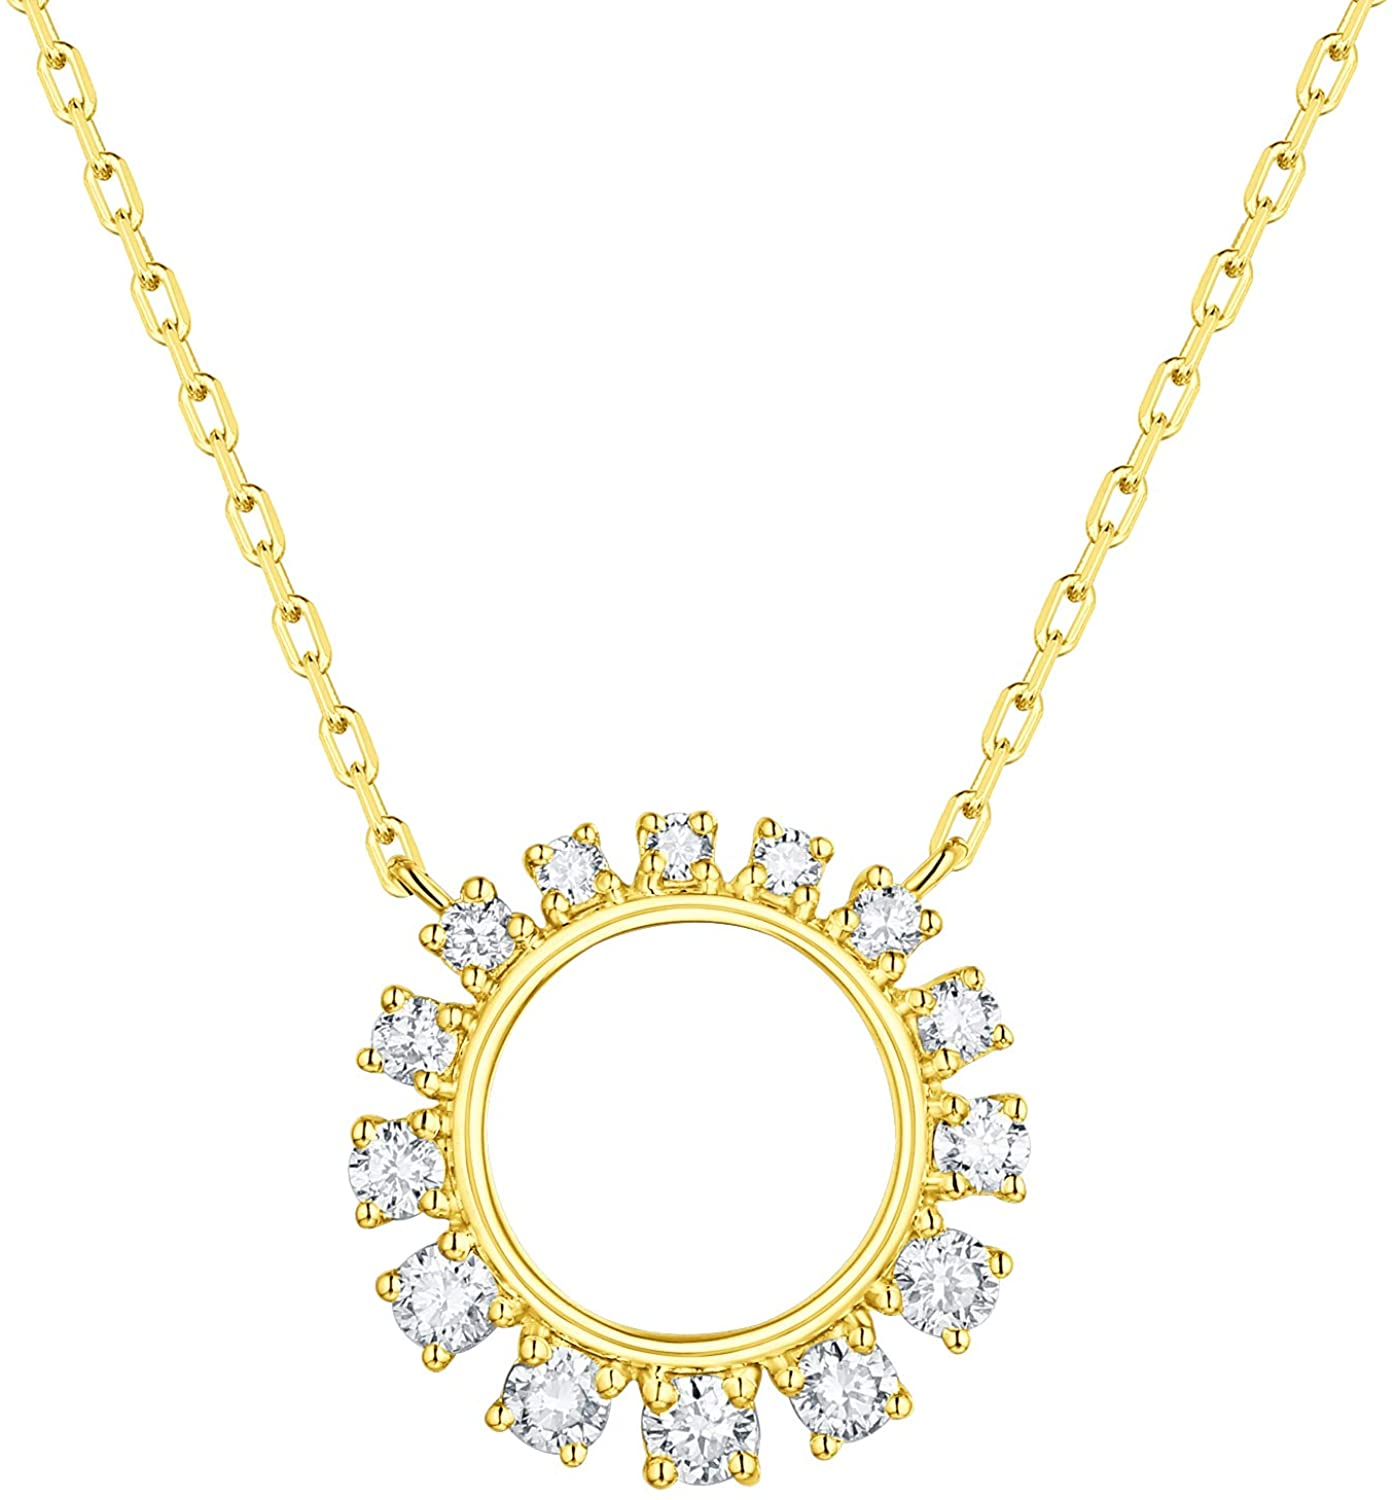 Prism Jewel 0.32Ct Natural Diamond Circle Shape Arch Style Necklace Crafted in 14k Gold